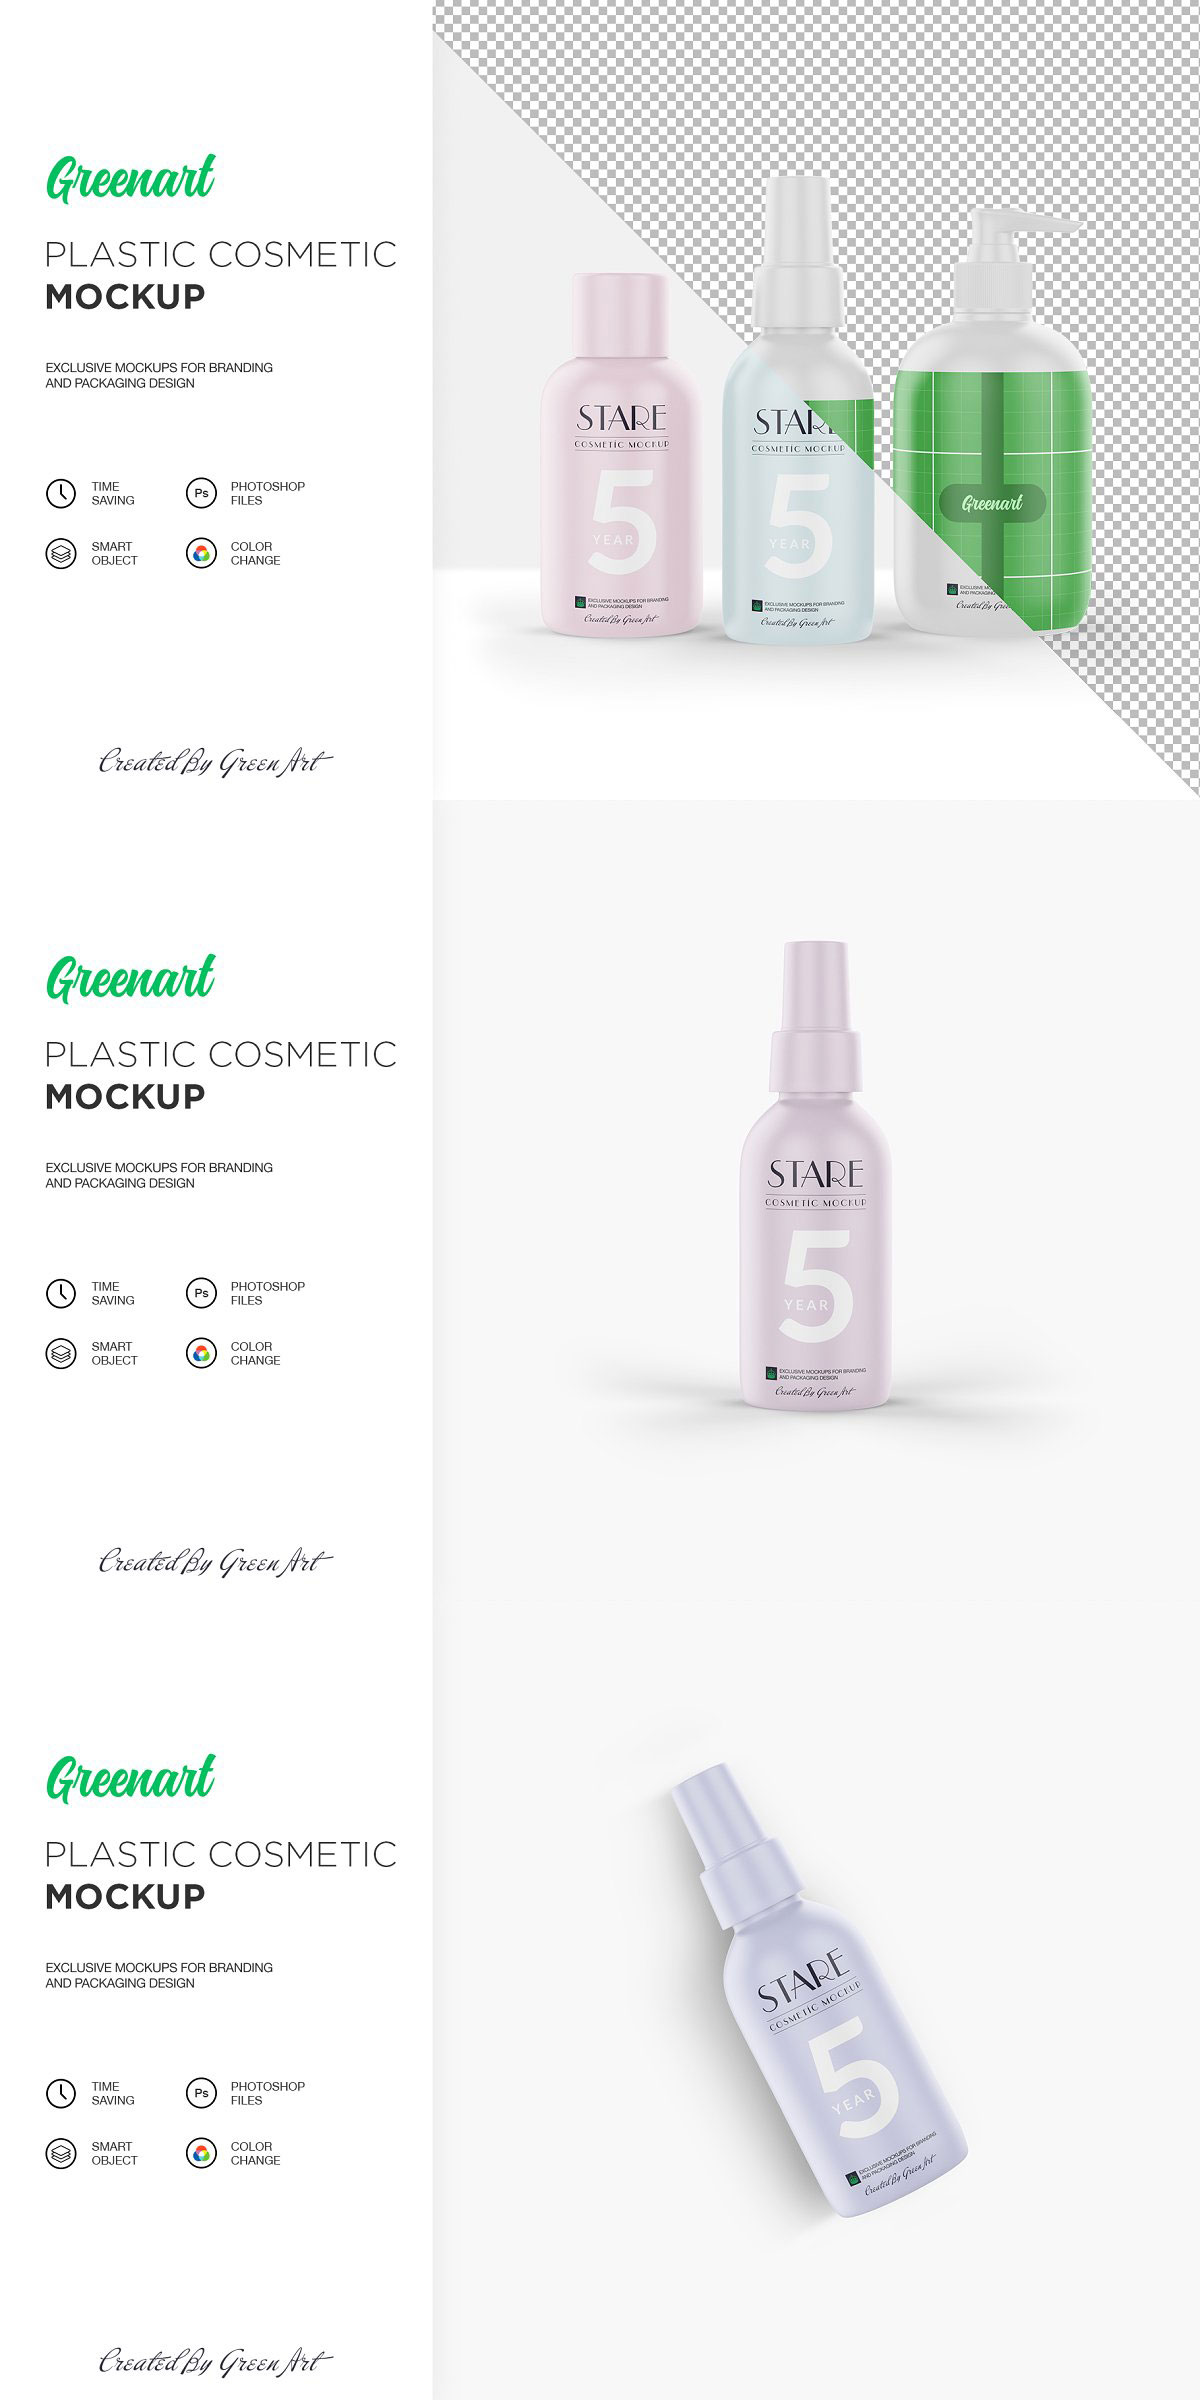 Cosmetic 7 PSD Mockup 2363765 Free Download